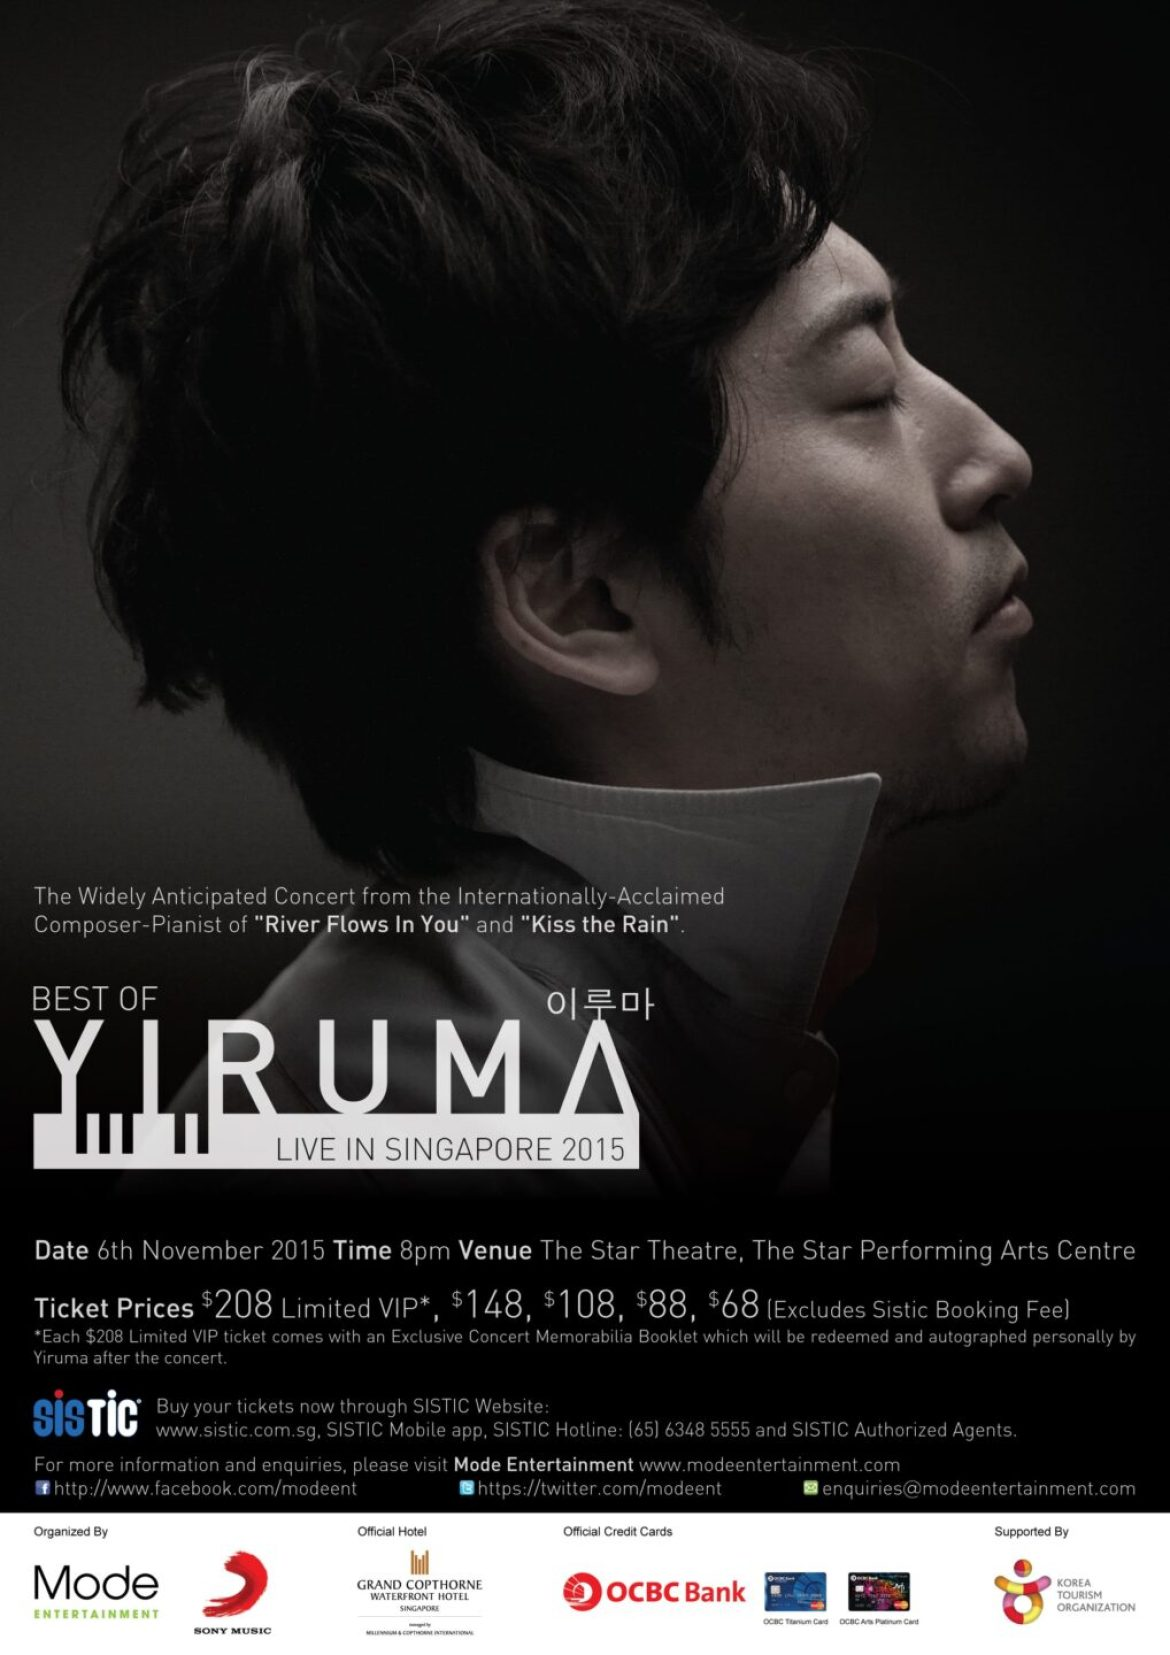 Best of Yiruma Live in Singapore 2015 [Poster]